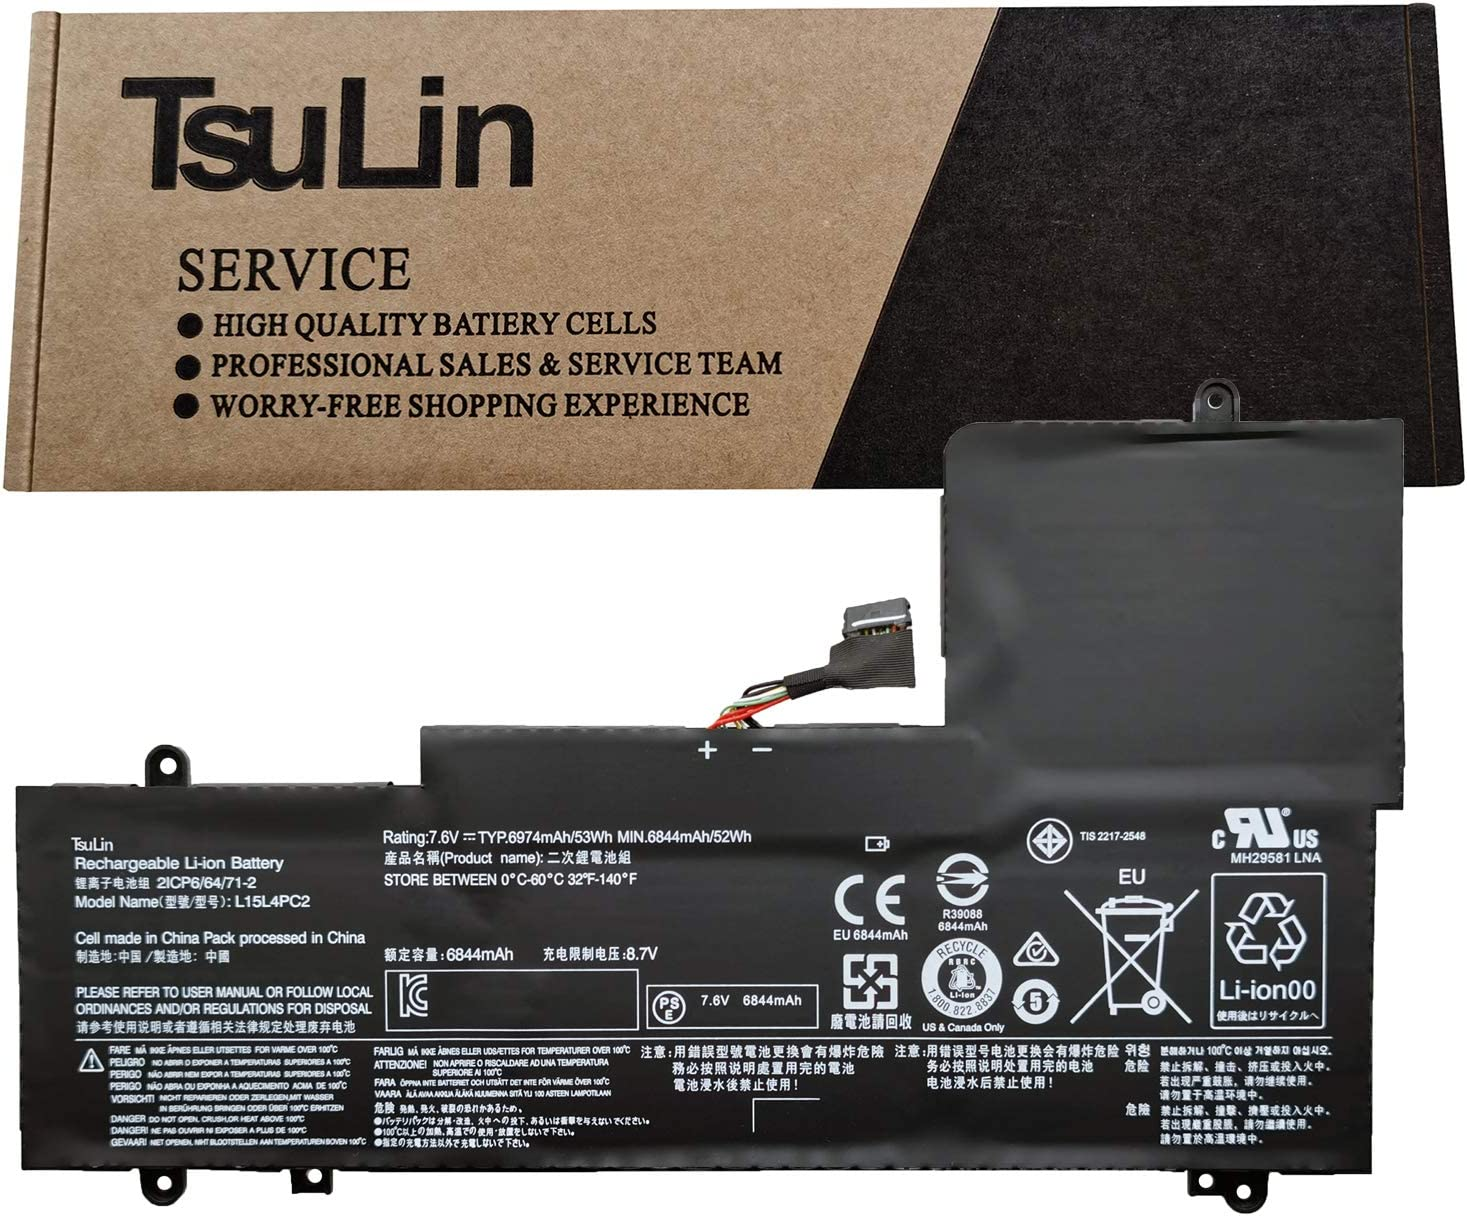 TsuLin L15L4PC2 Laptop Battery Replacement for Lenovo Ideapad Yoga 710-14IKB 710-14ISK 710-15IKB 710-15ISK Series Notebook L15M4PC2 5B10K90778 5B10K90802 7.6V 53Wh 6974mAh